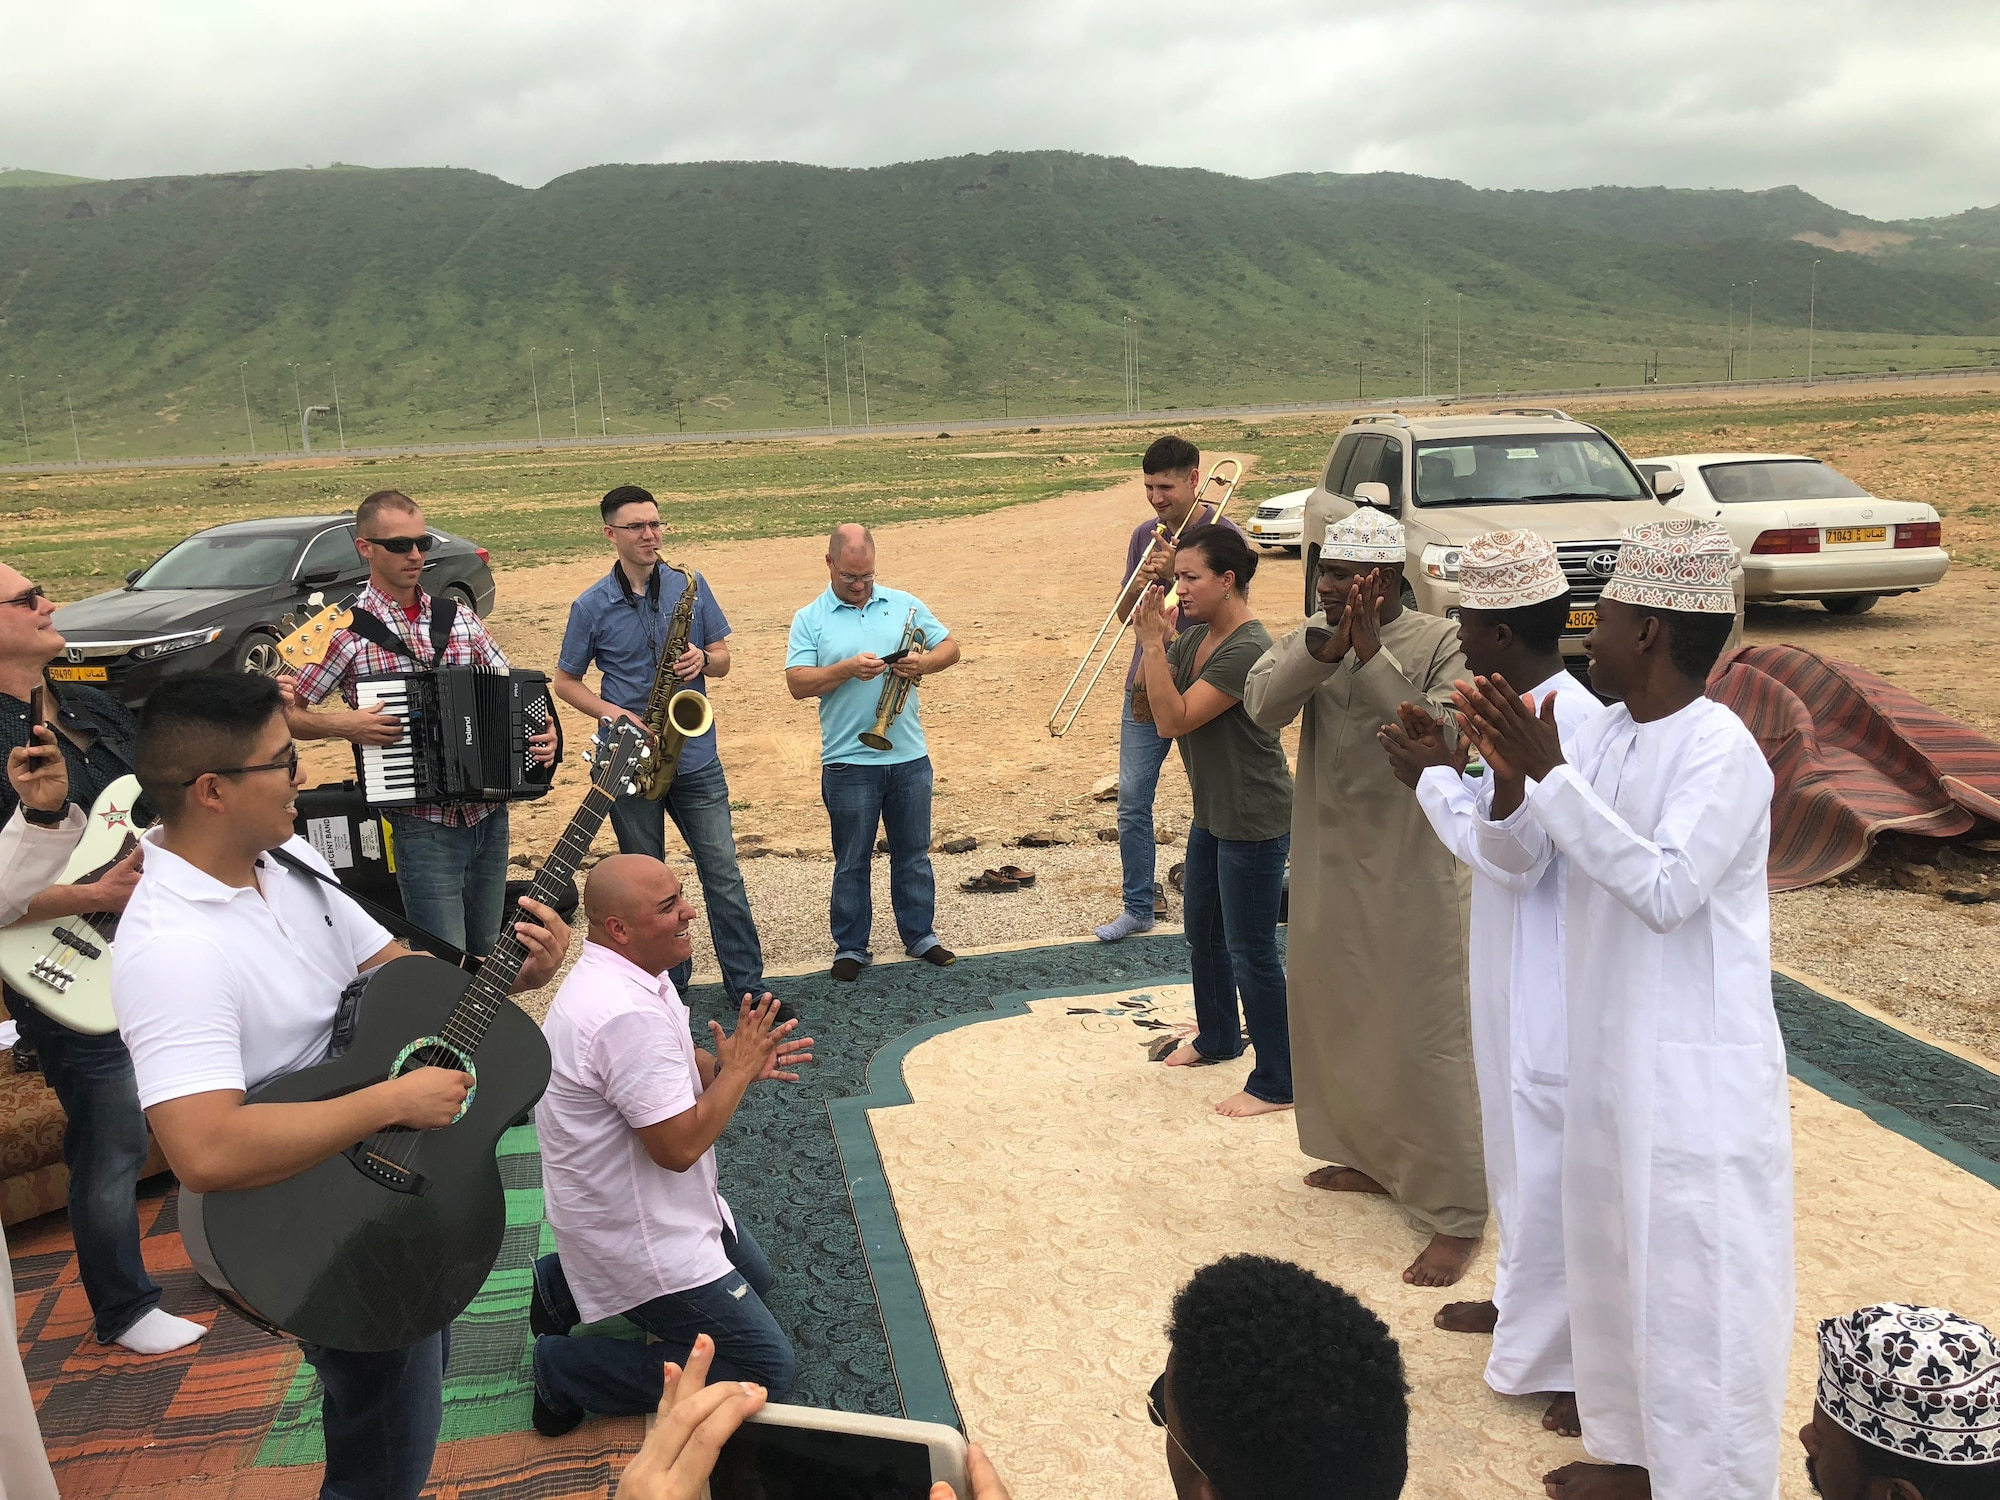 The U.S. Air Forces Central Command Band collaborates with local musician near Salalah, Oman Aug. 12, 2018. The U.S. Embassy in Oman organized the cultural exchange. The AFCENT Band has a mission to develop relationships across the U.S. Central Command area of responsibility on behalf of the United States and the United States Air Force. (U.S. Air Force photo by Capt. Dustin Doyle)